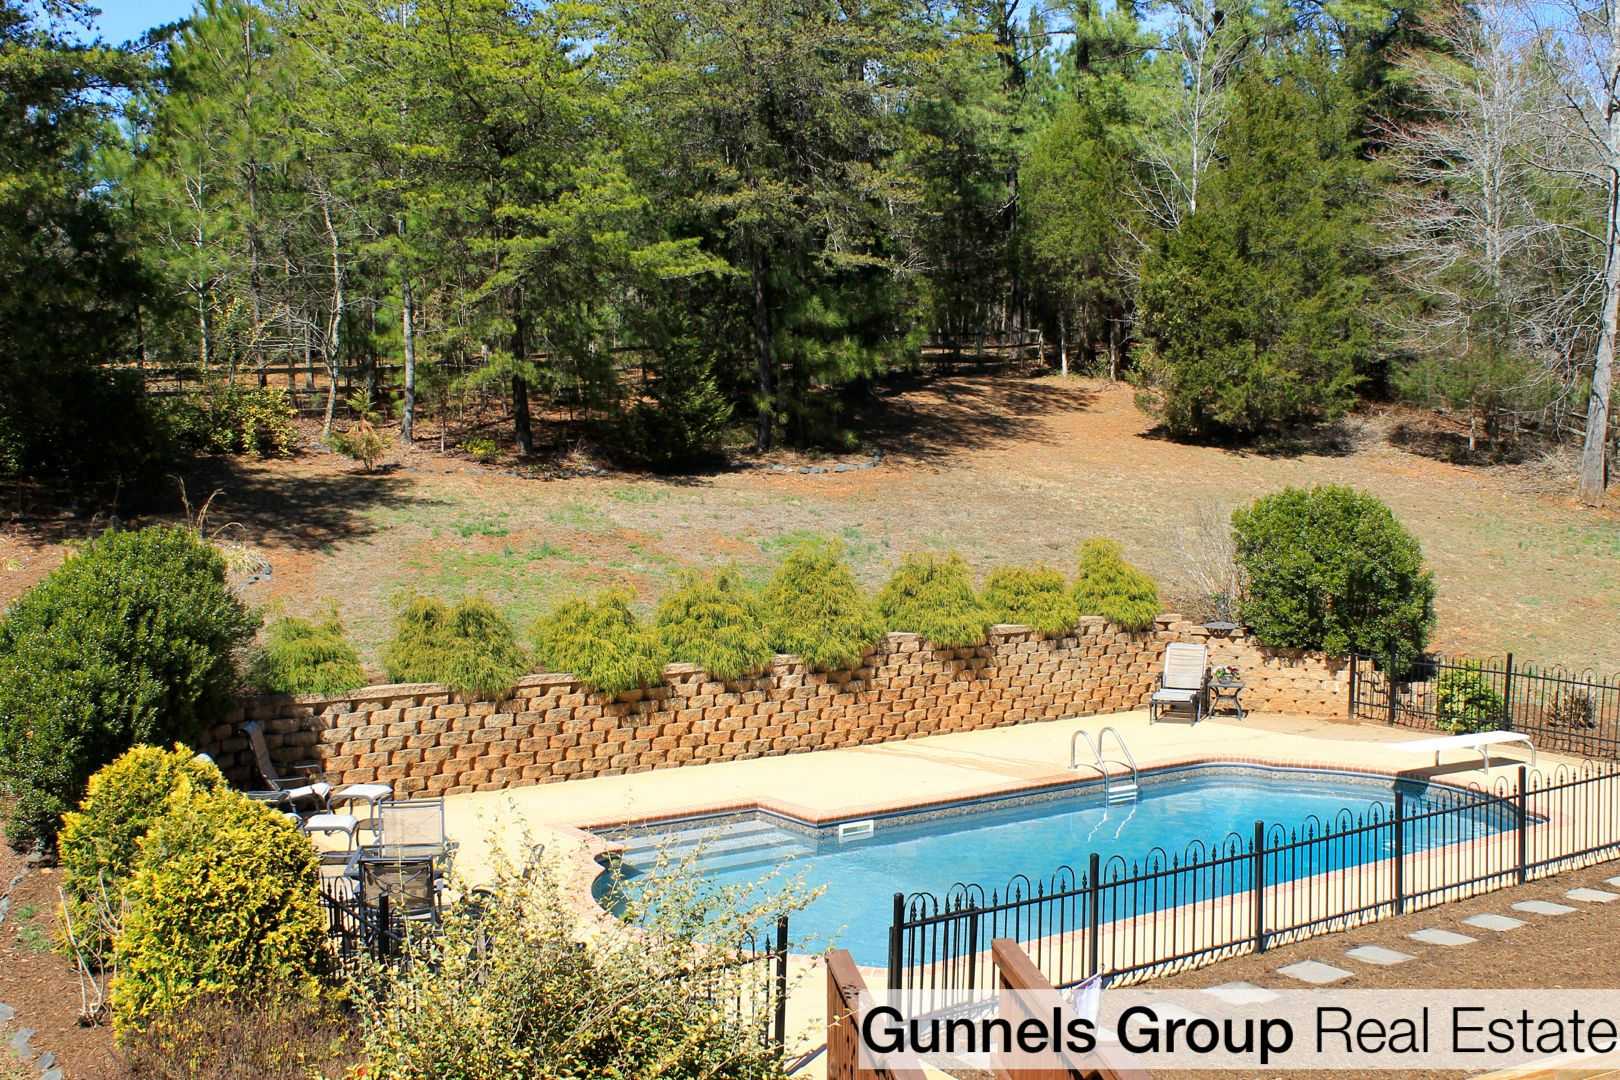 Summer Fun! Dive in this gorgeous 34x16 in-ground pool, accented by ...